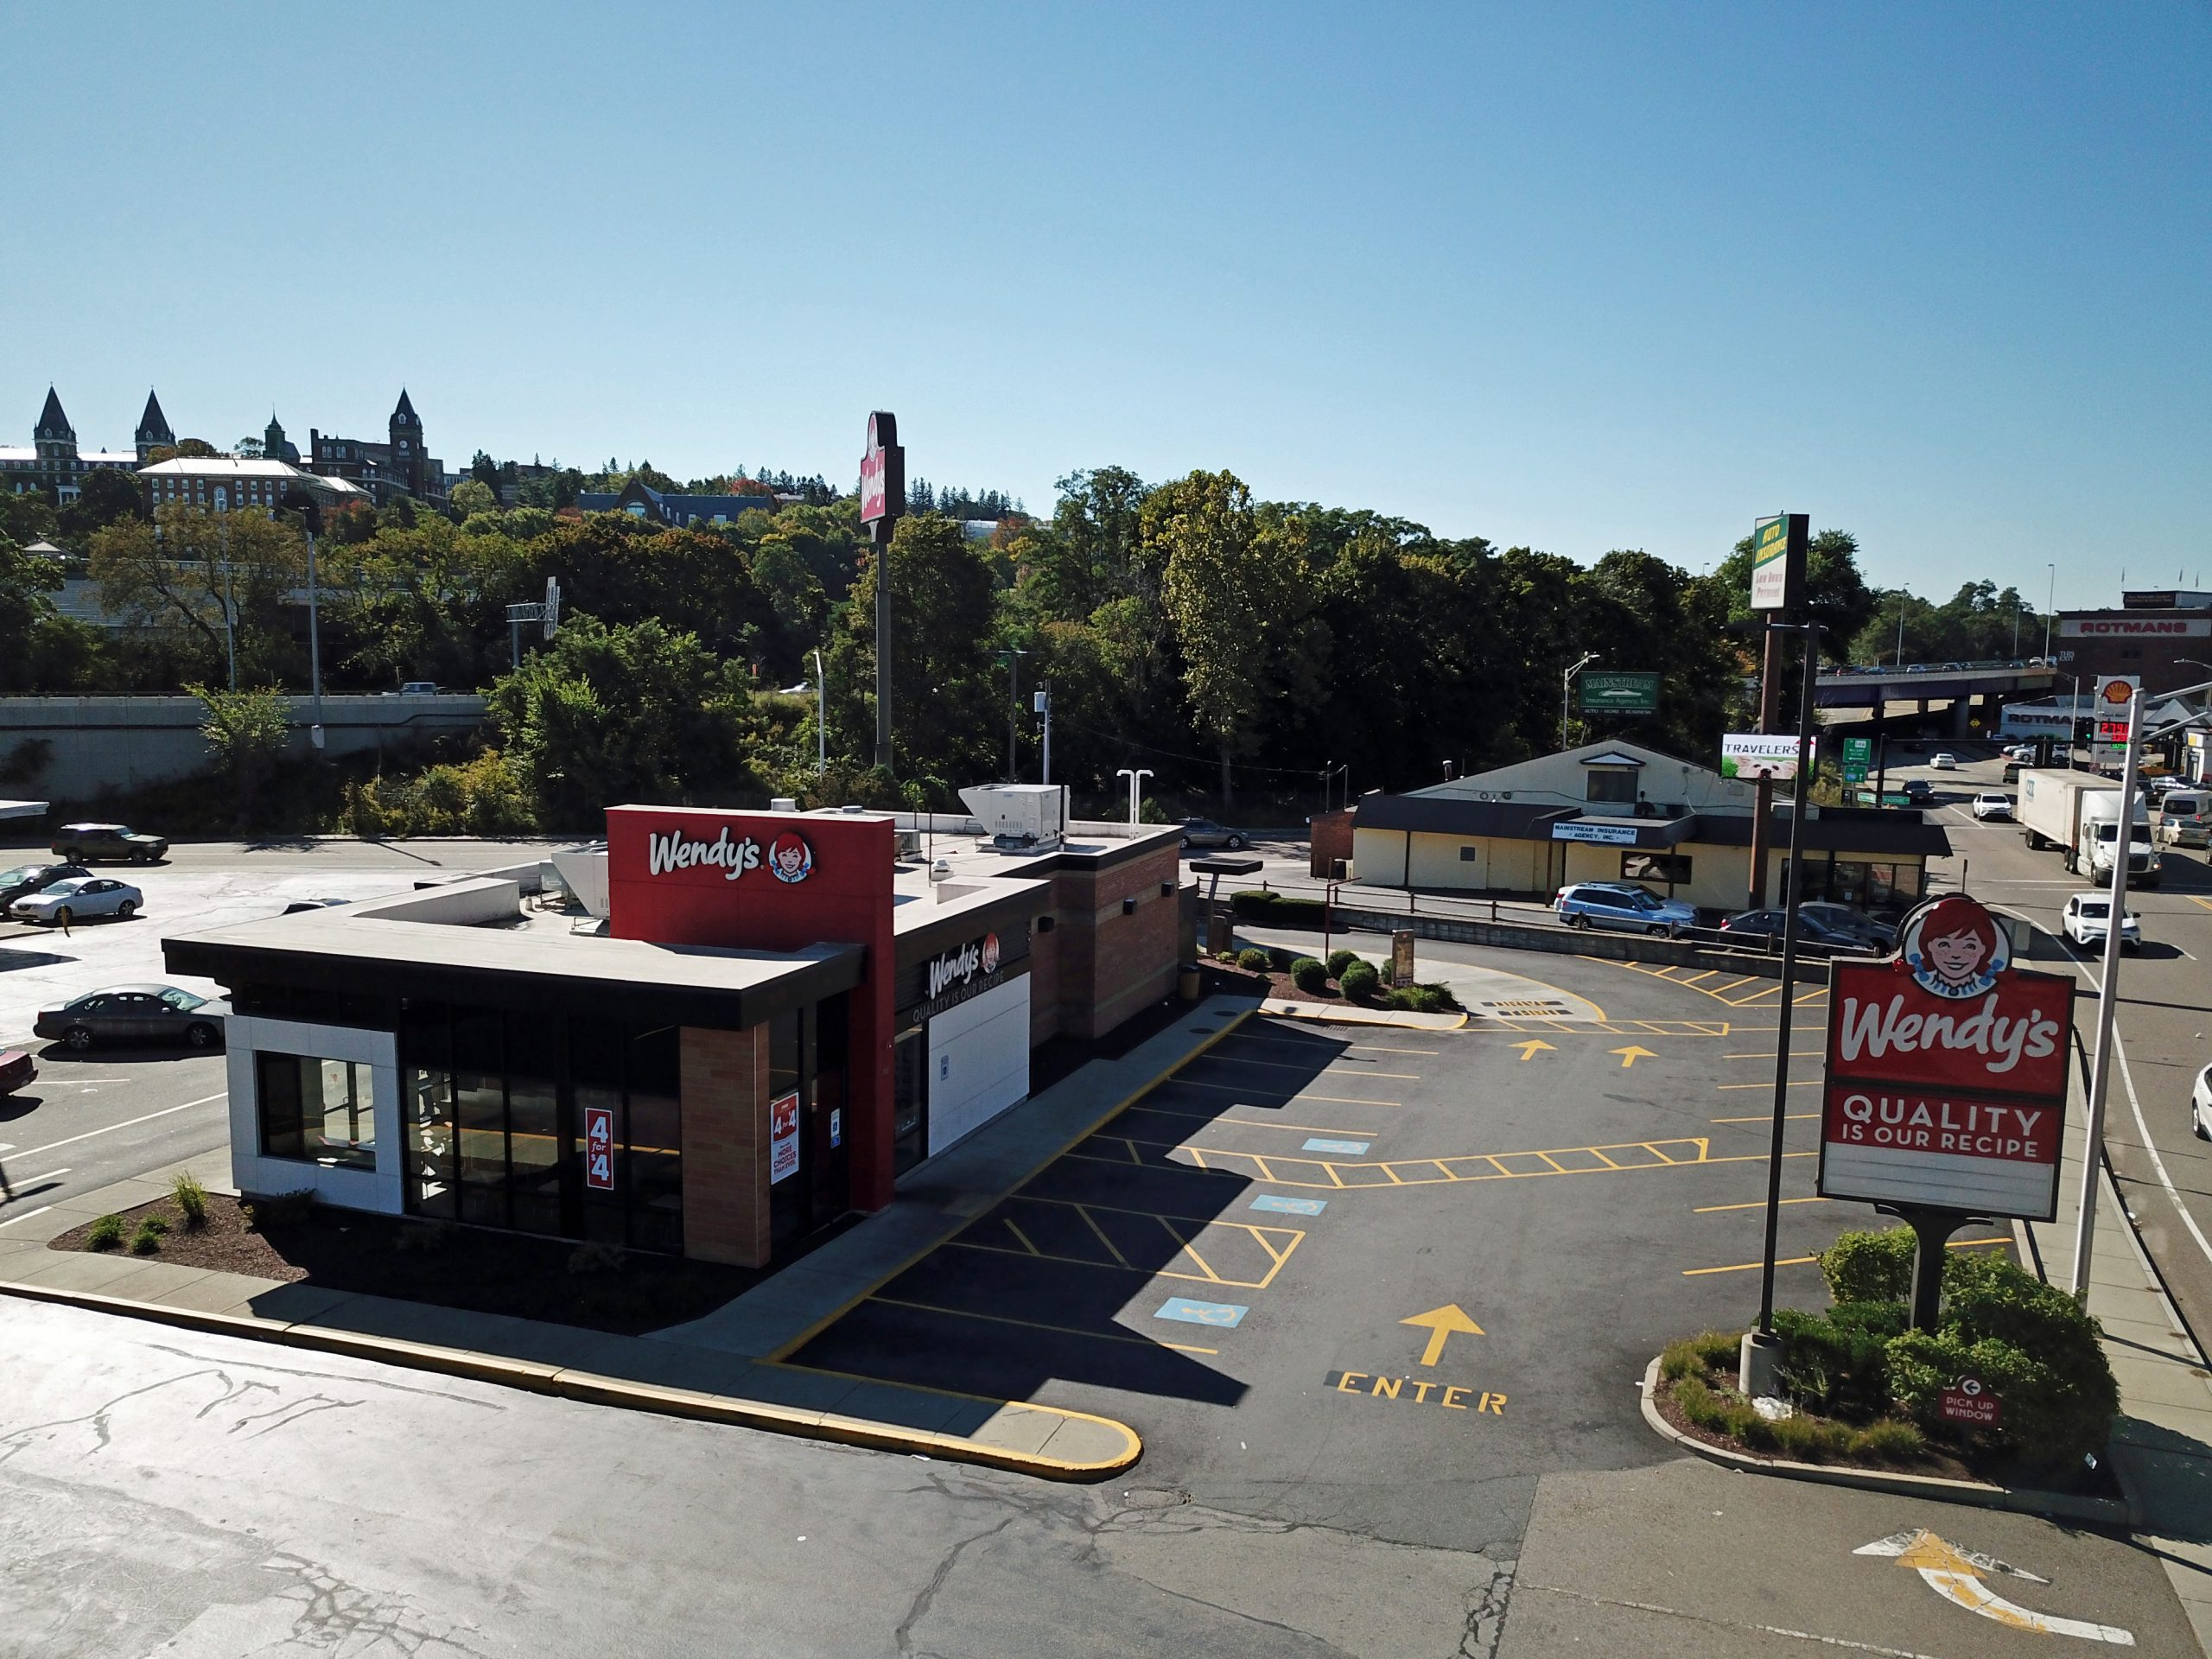 worcester ma wendy's location